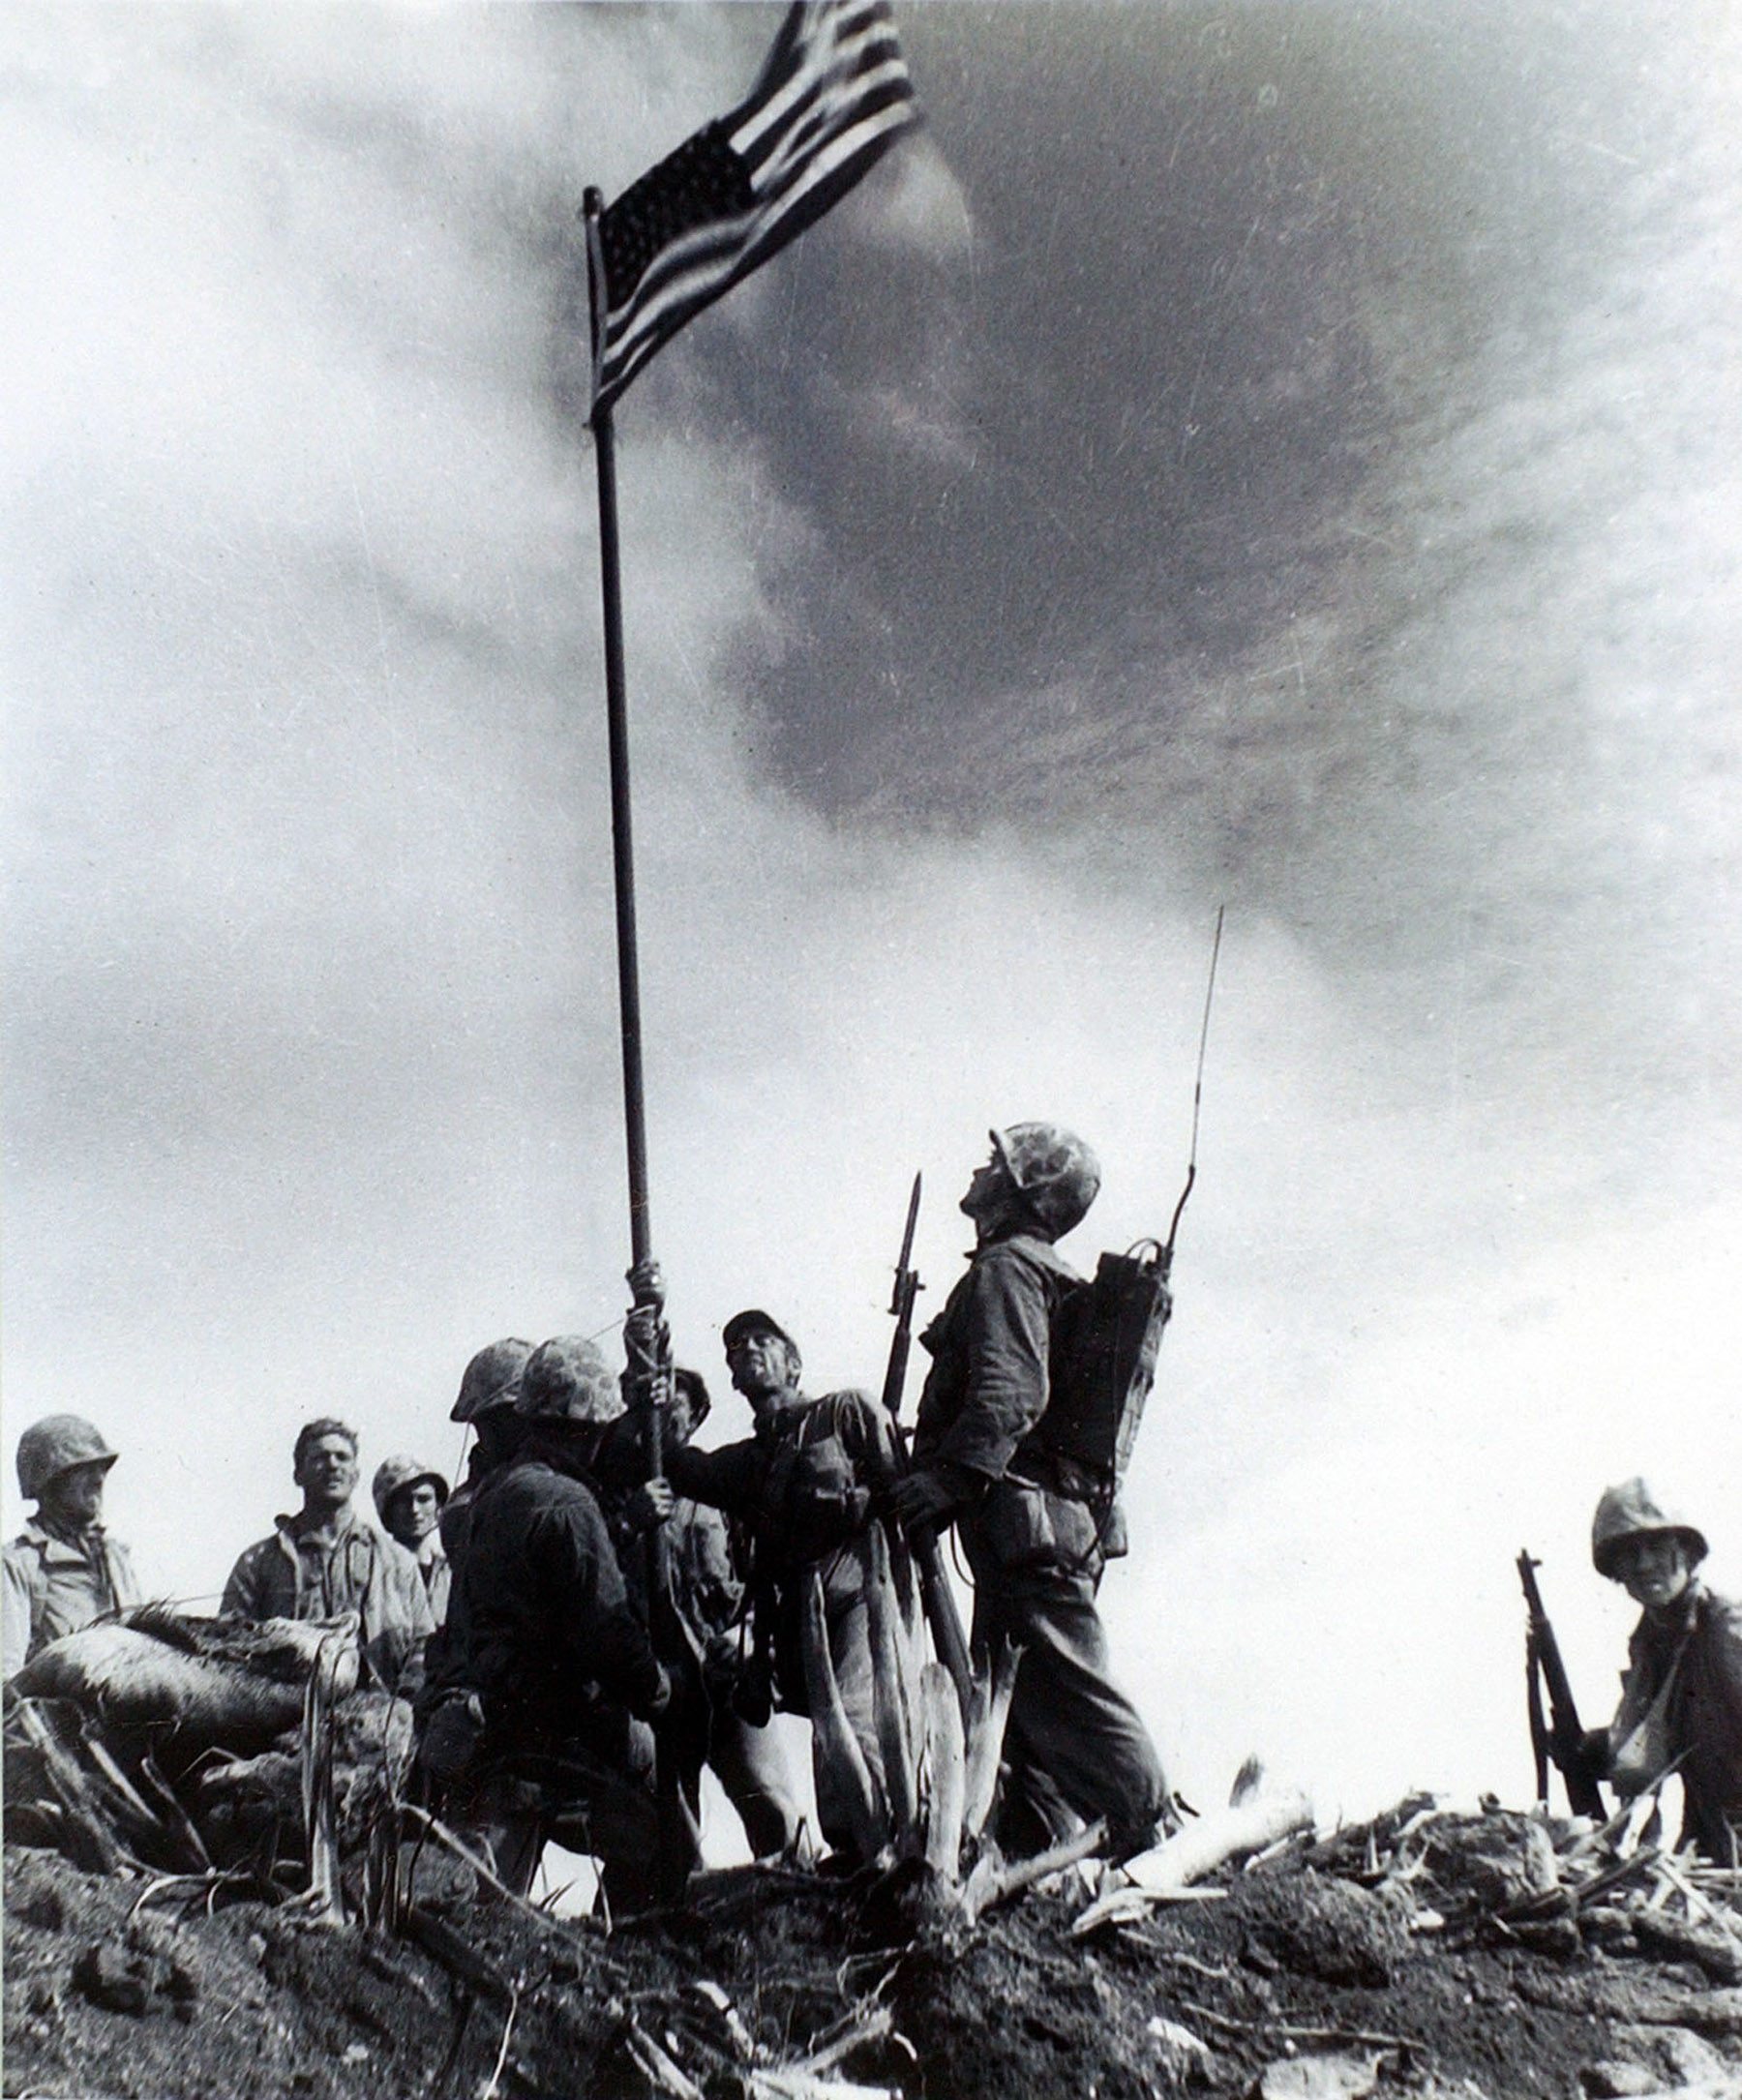 Res: 1800x2170, Iwo Jima: New mystery arises from iconic image - Omaha.com - Omaha  World-Herald